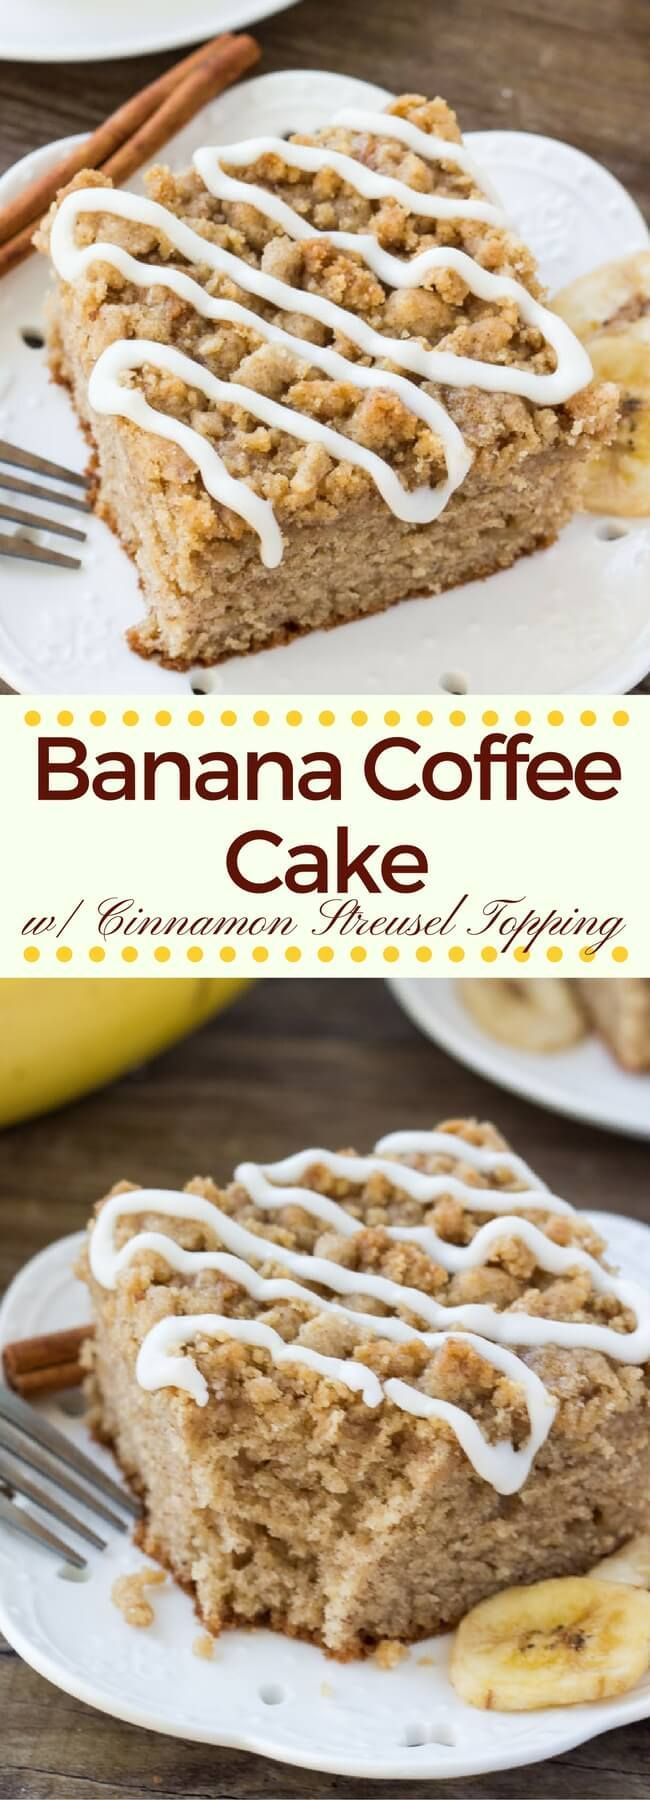 Instead of making banana bread - try this banana coffee cake. It's a deliciously moist banana cake filled with cinnamon, brown sugar and vanilla. Then it's topped with crunchy cinnamon struesel and a drizzle of vanilla glaze. #bananacake #coffeecake #bananacoffeecake #streusel